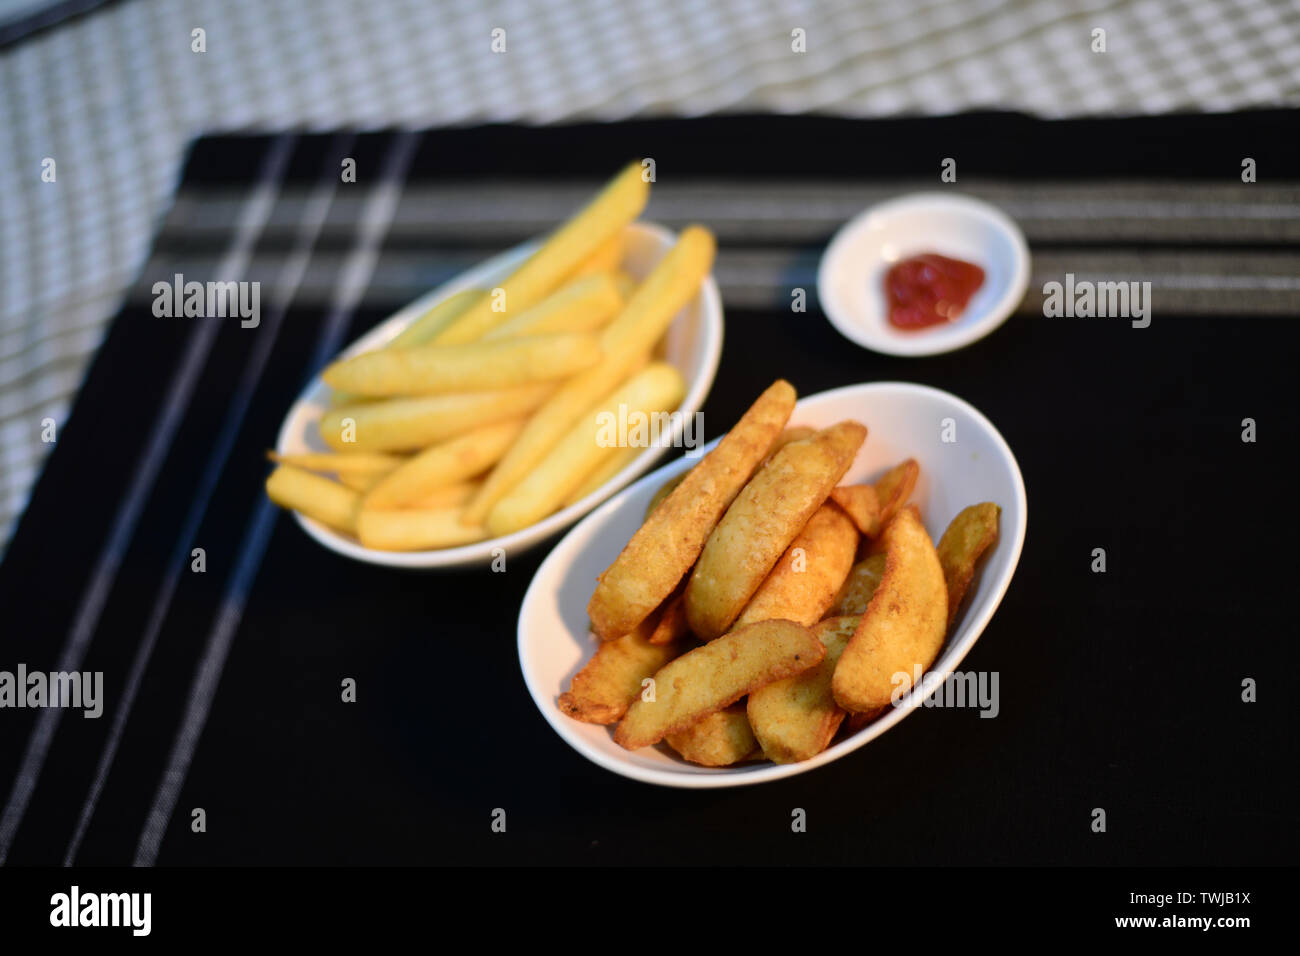 Crispy potato chips and wedges, setup nicely on table ready to serve - Stock Image